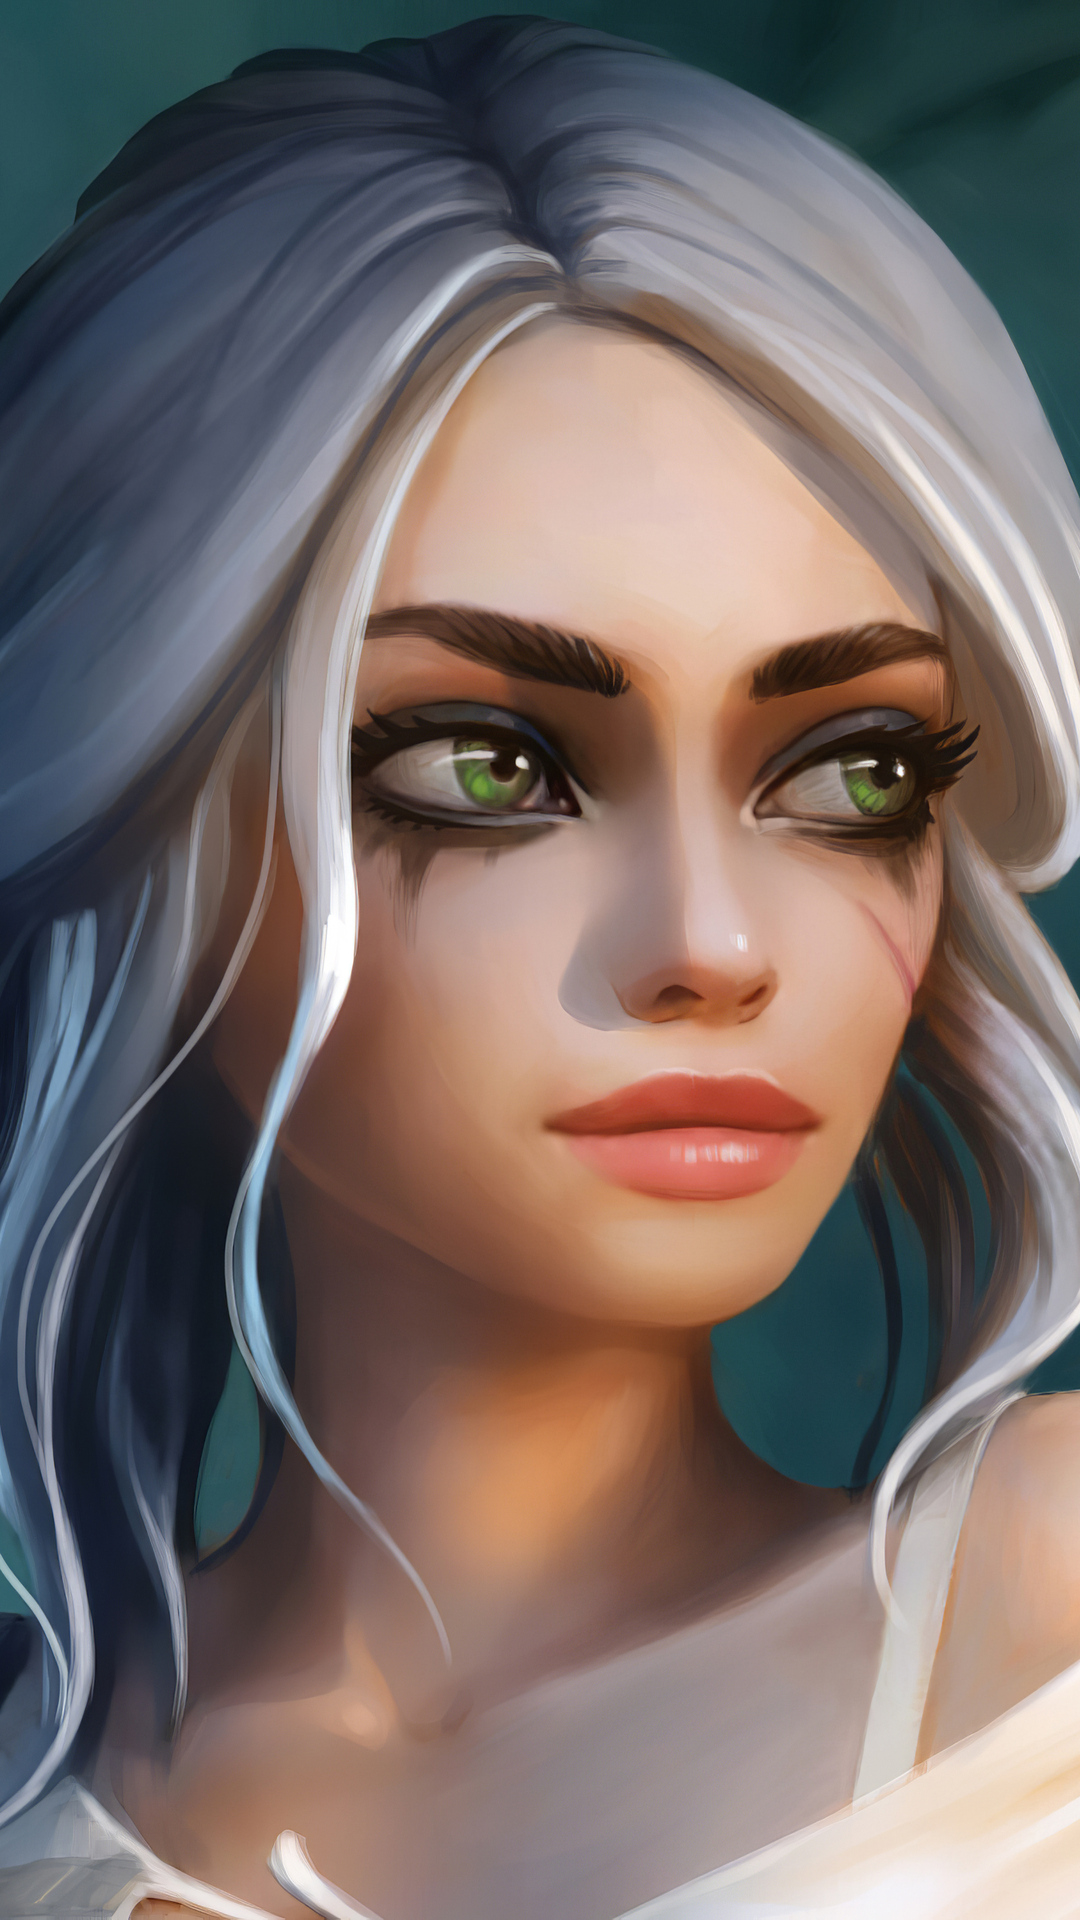 ciri-from-witcher-3-fanart-4k-2z.jpg